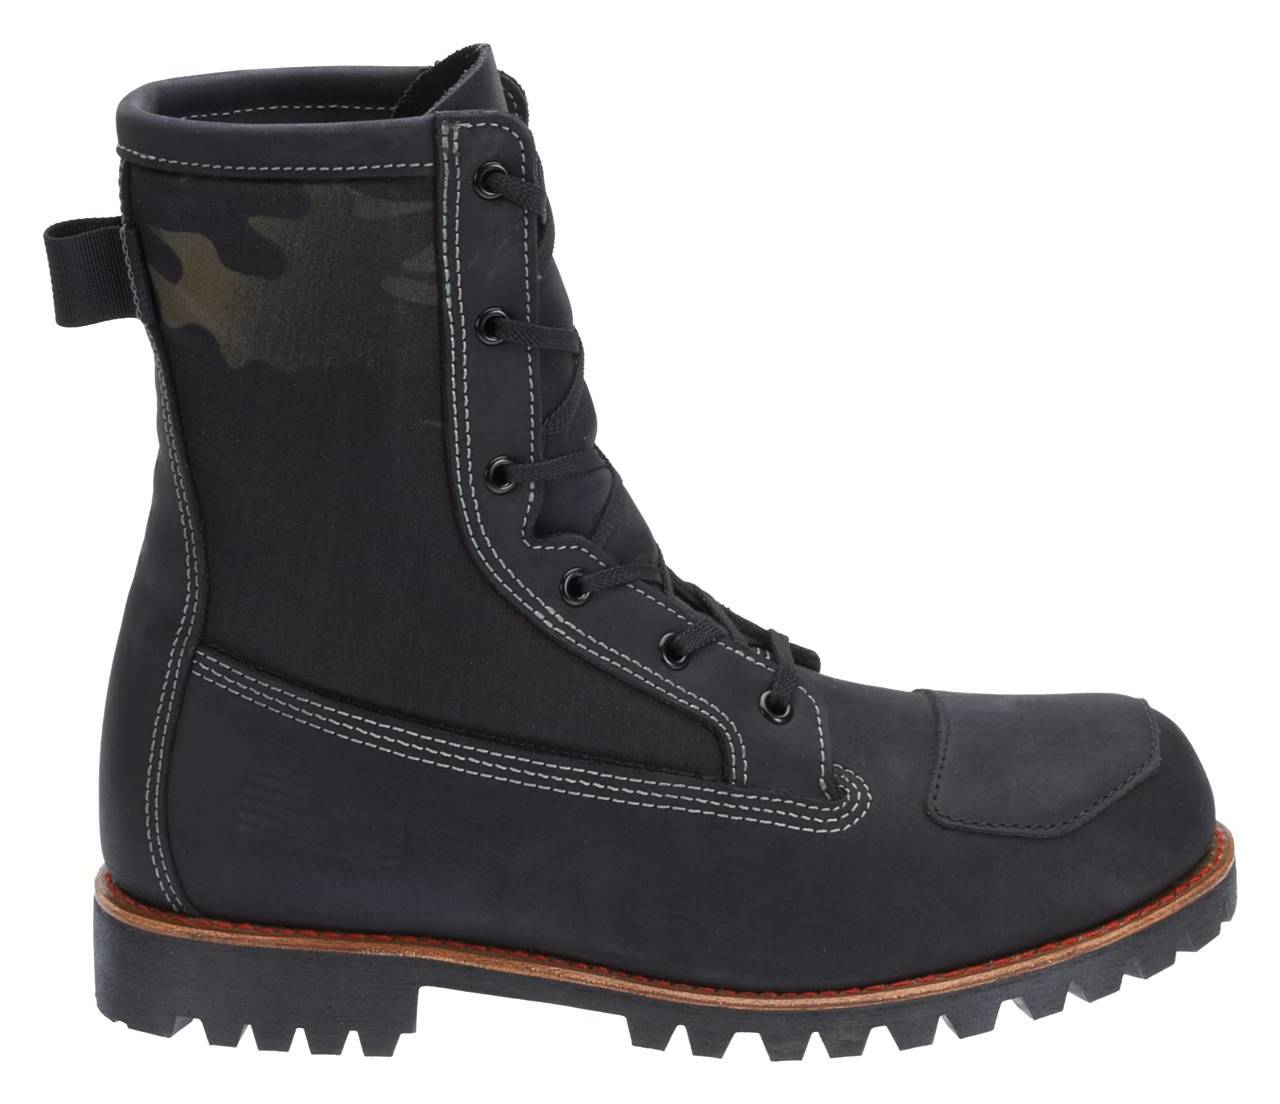 Bates Bomber Boots